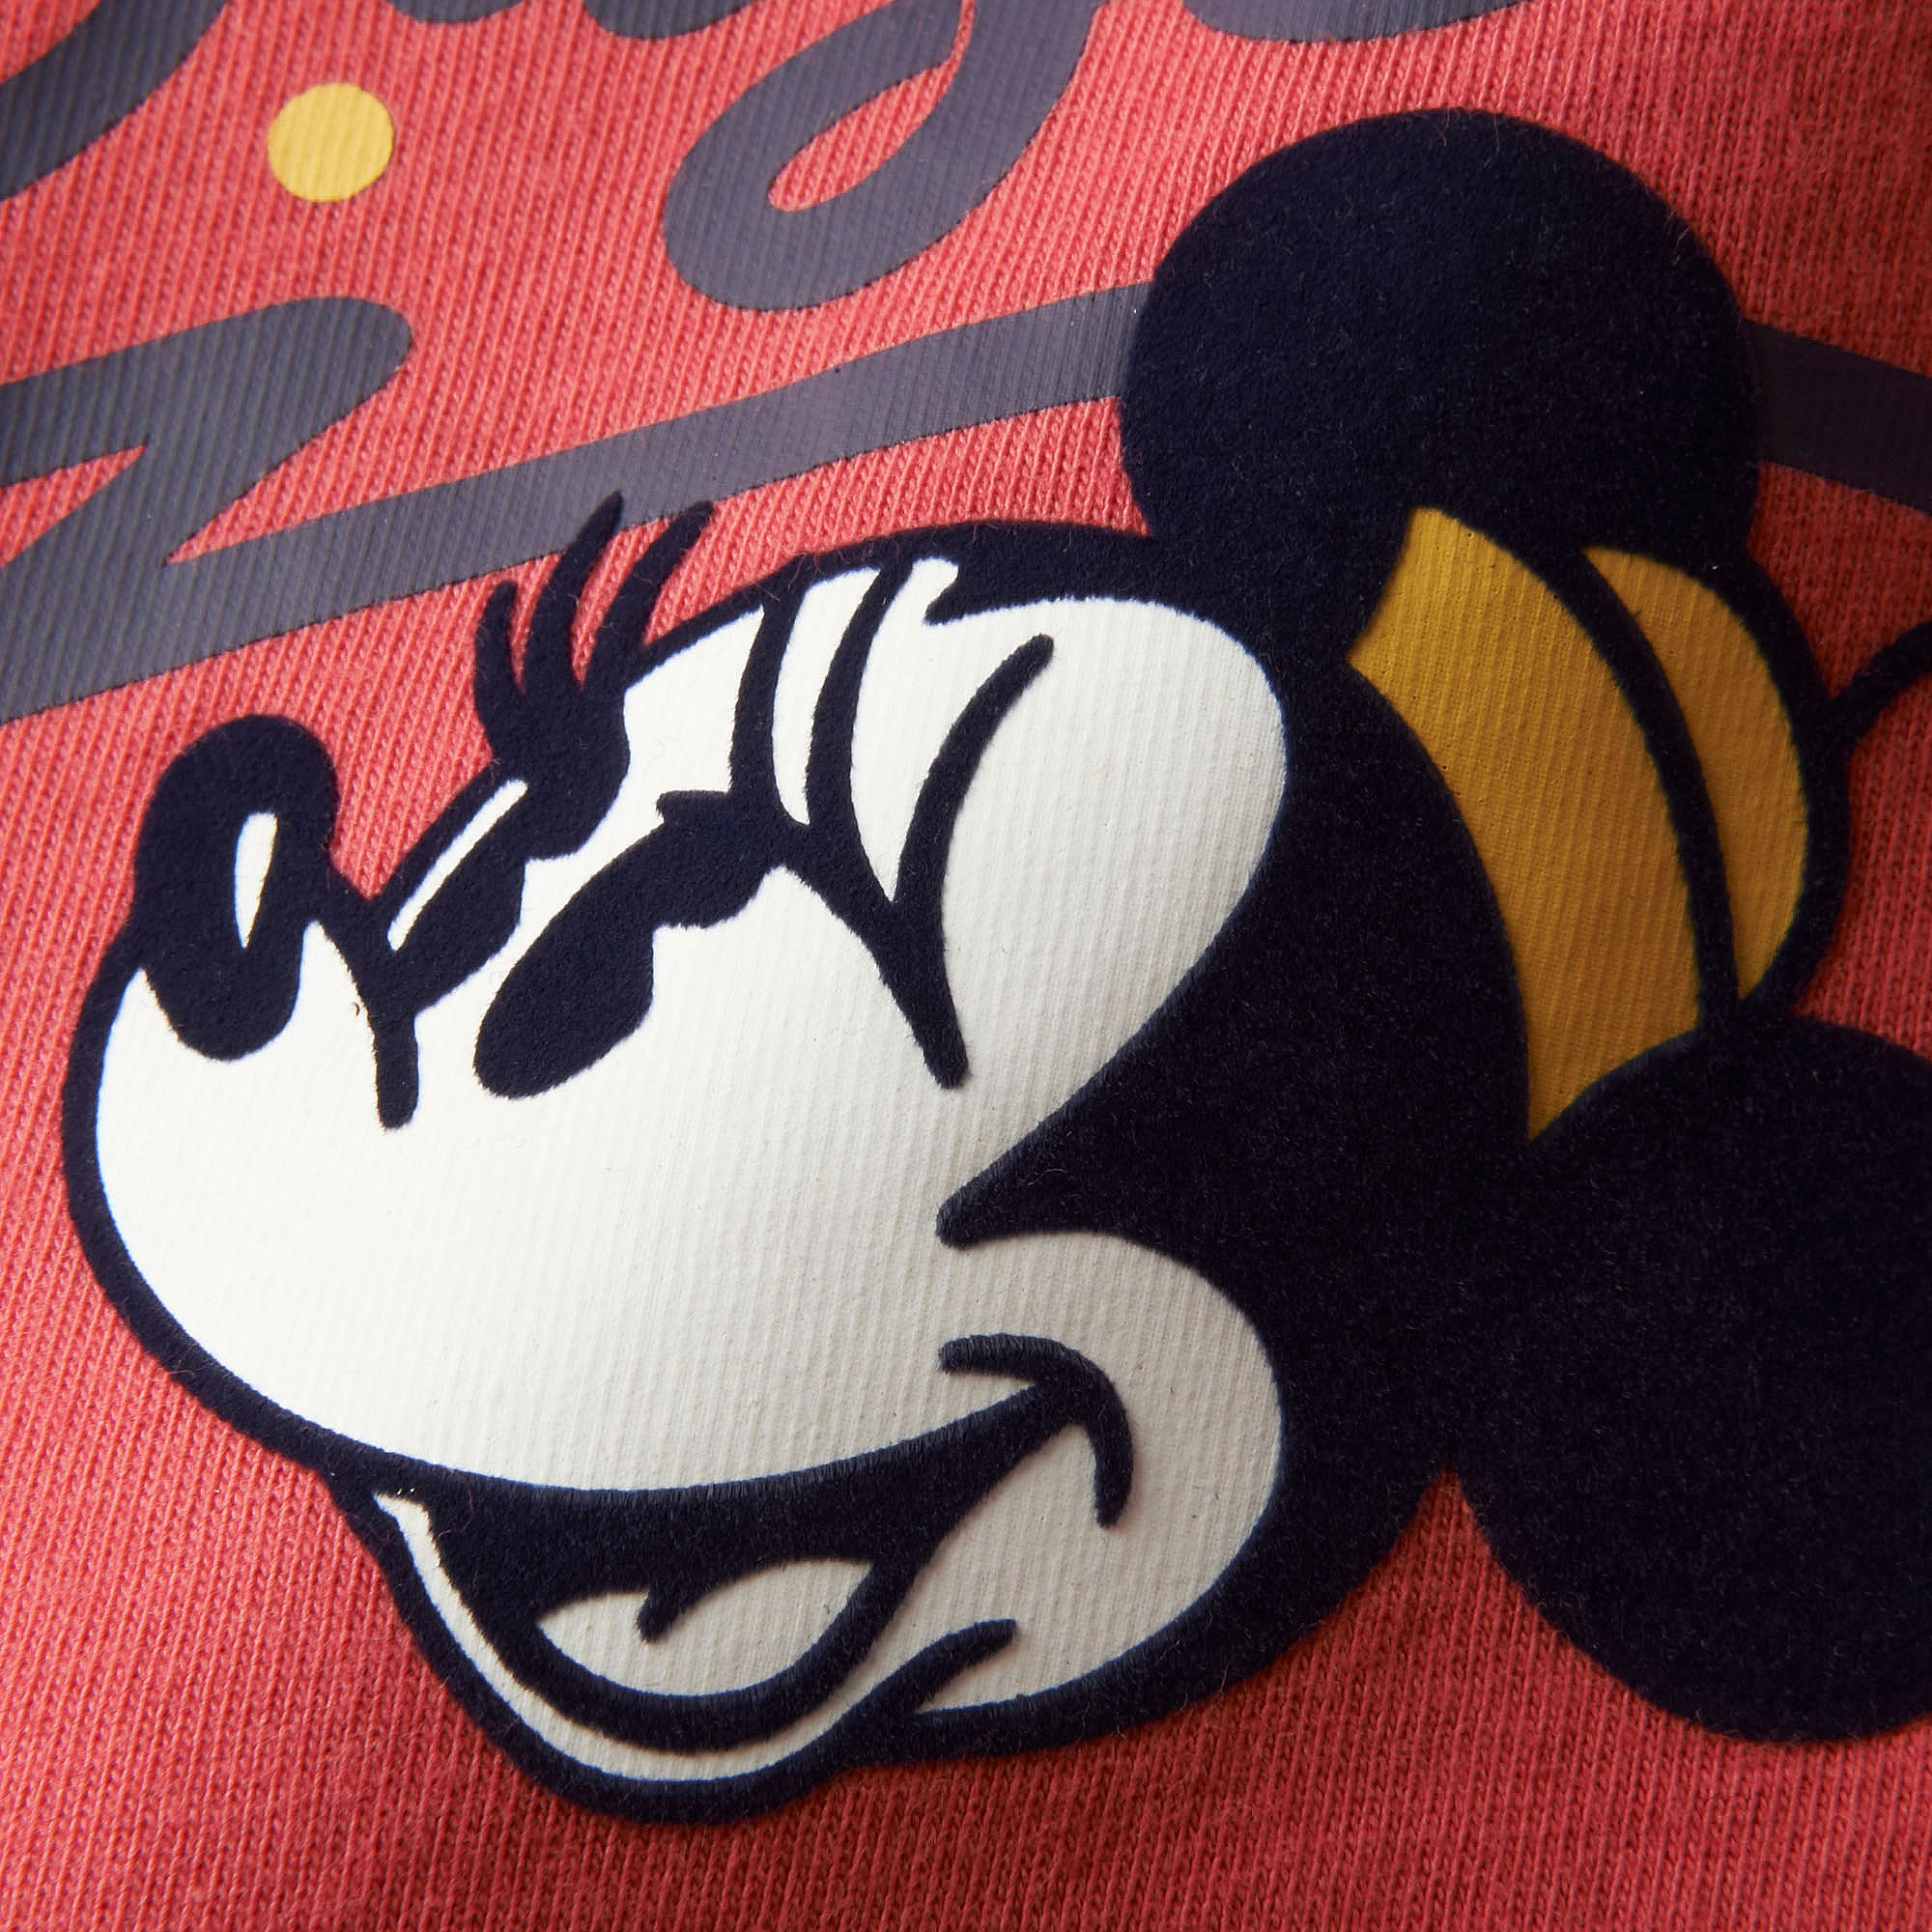 0e193b70d Uniqlo WOMEN LOVE & MICKEY MOUSE COLLECTION GRAPHIC T-SHIRT at £4.9 ...